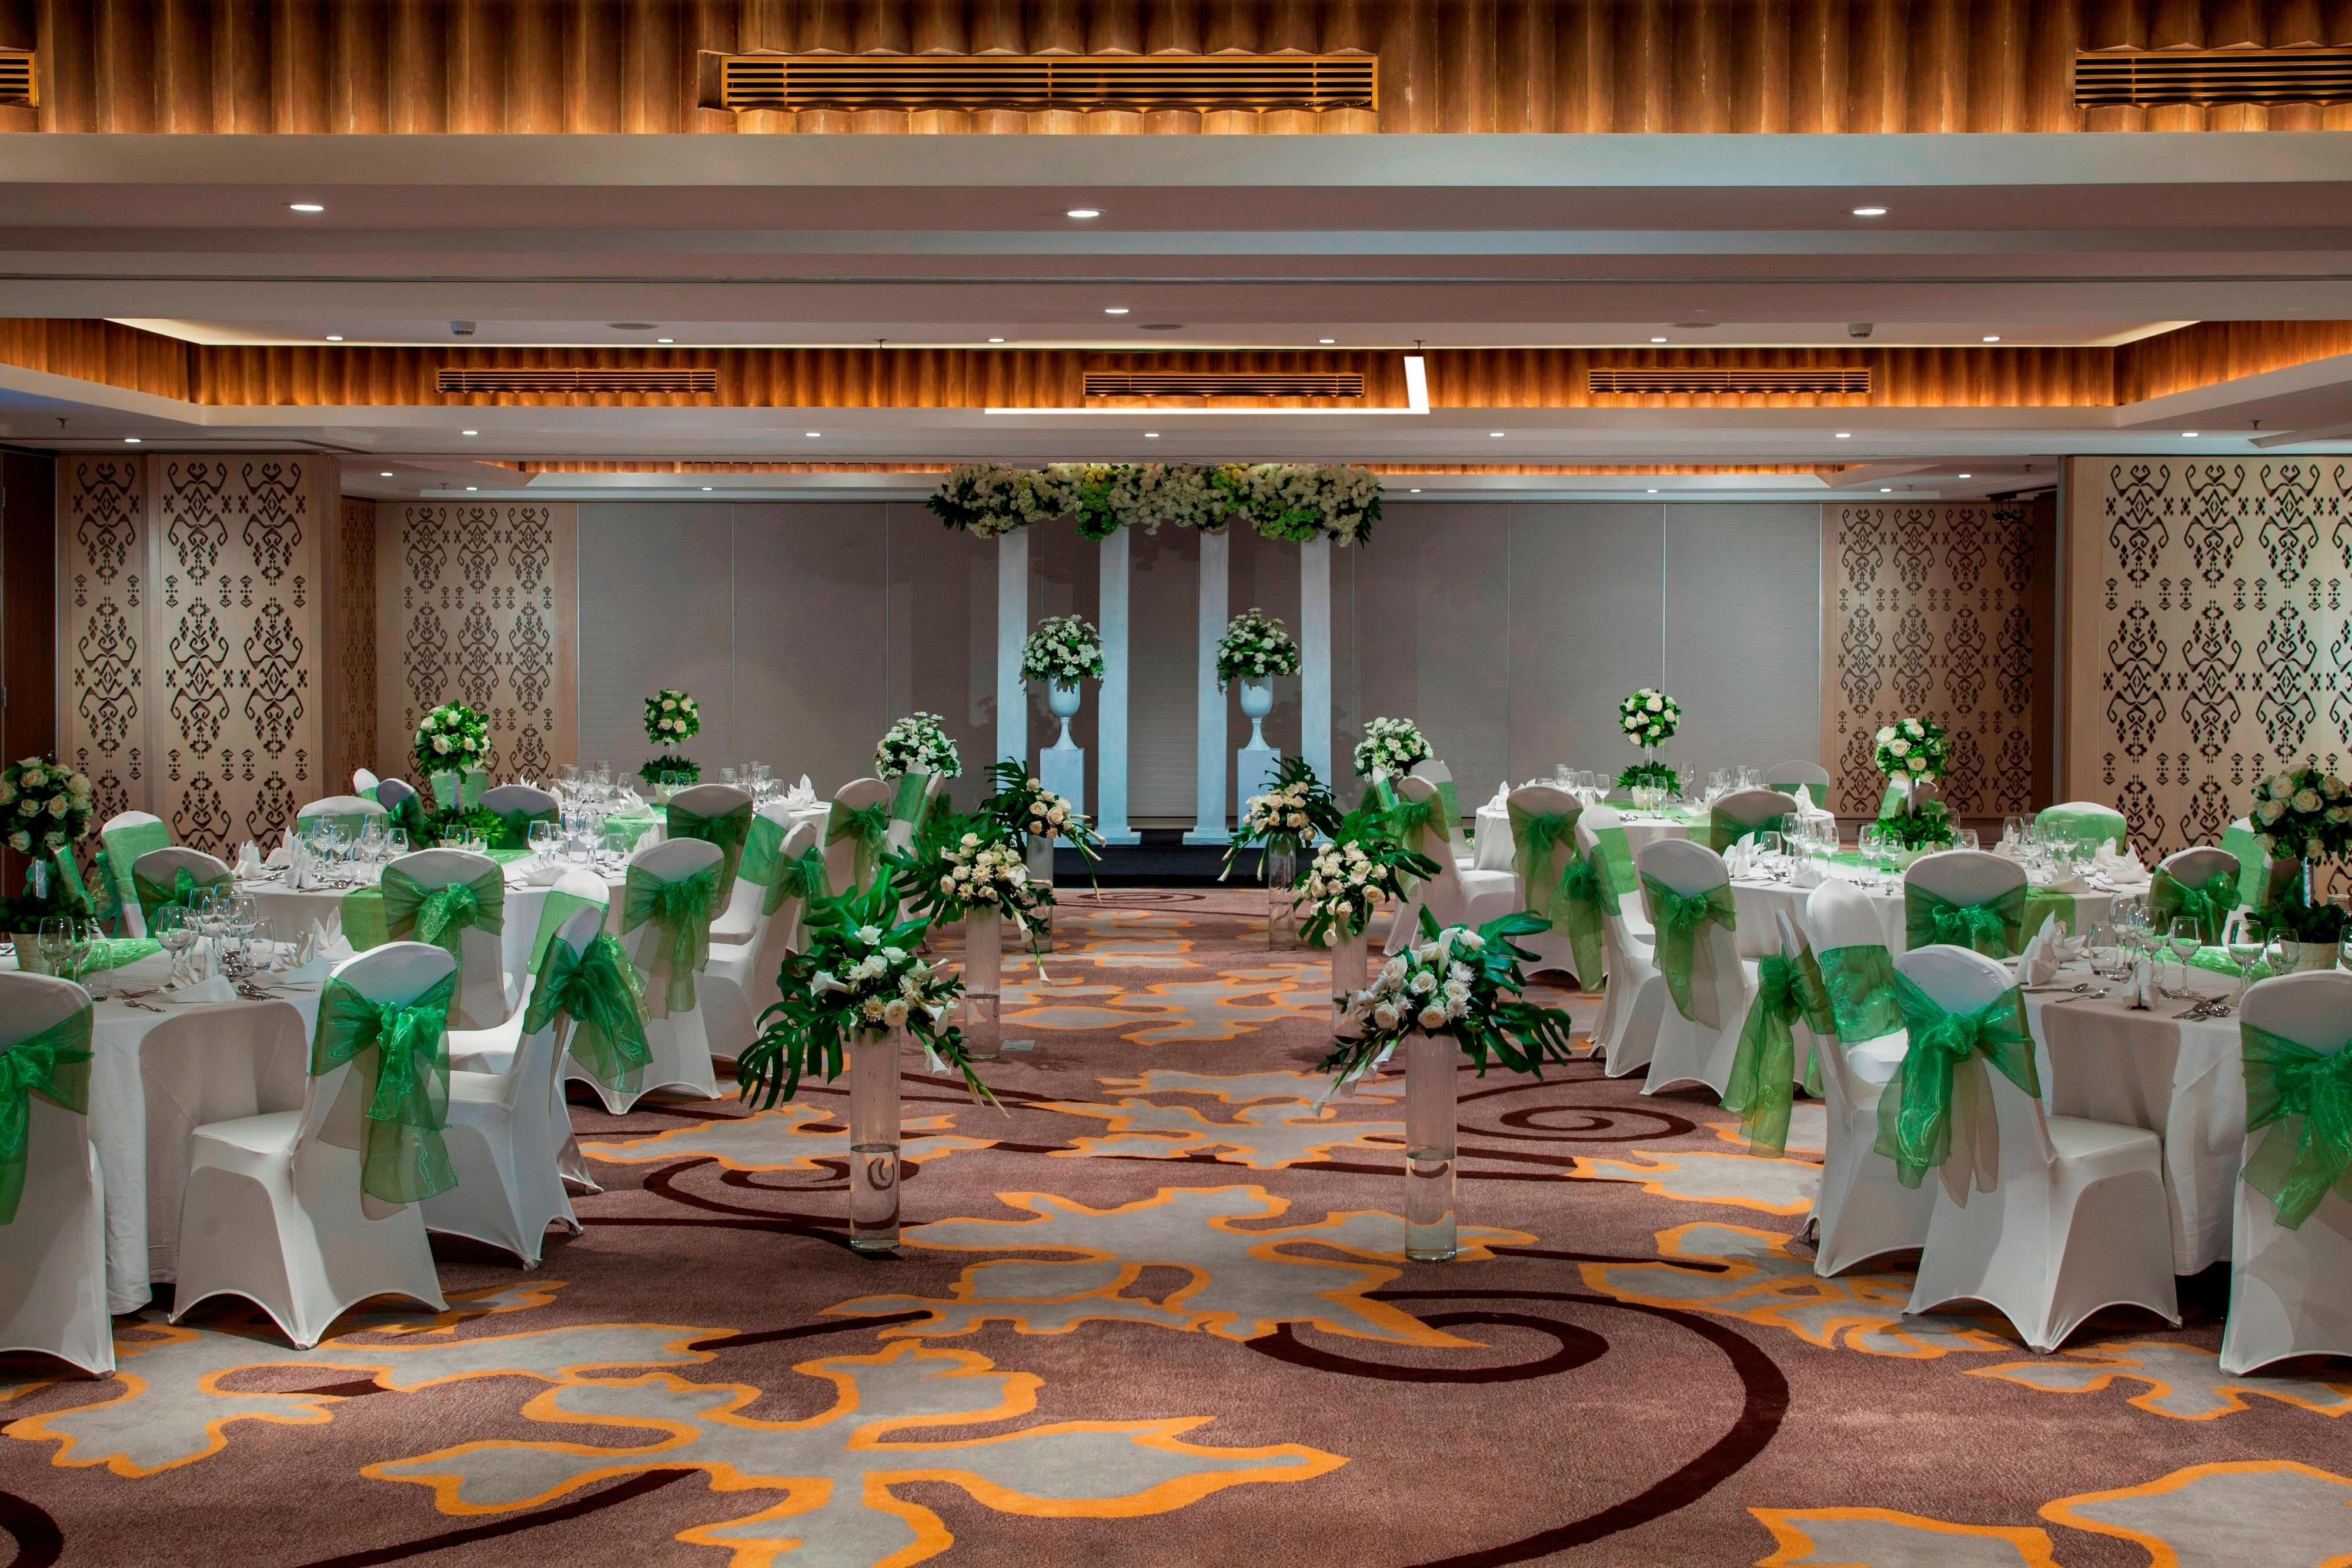 Wedding Reception in Bali Ballroom